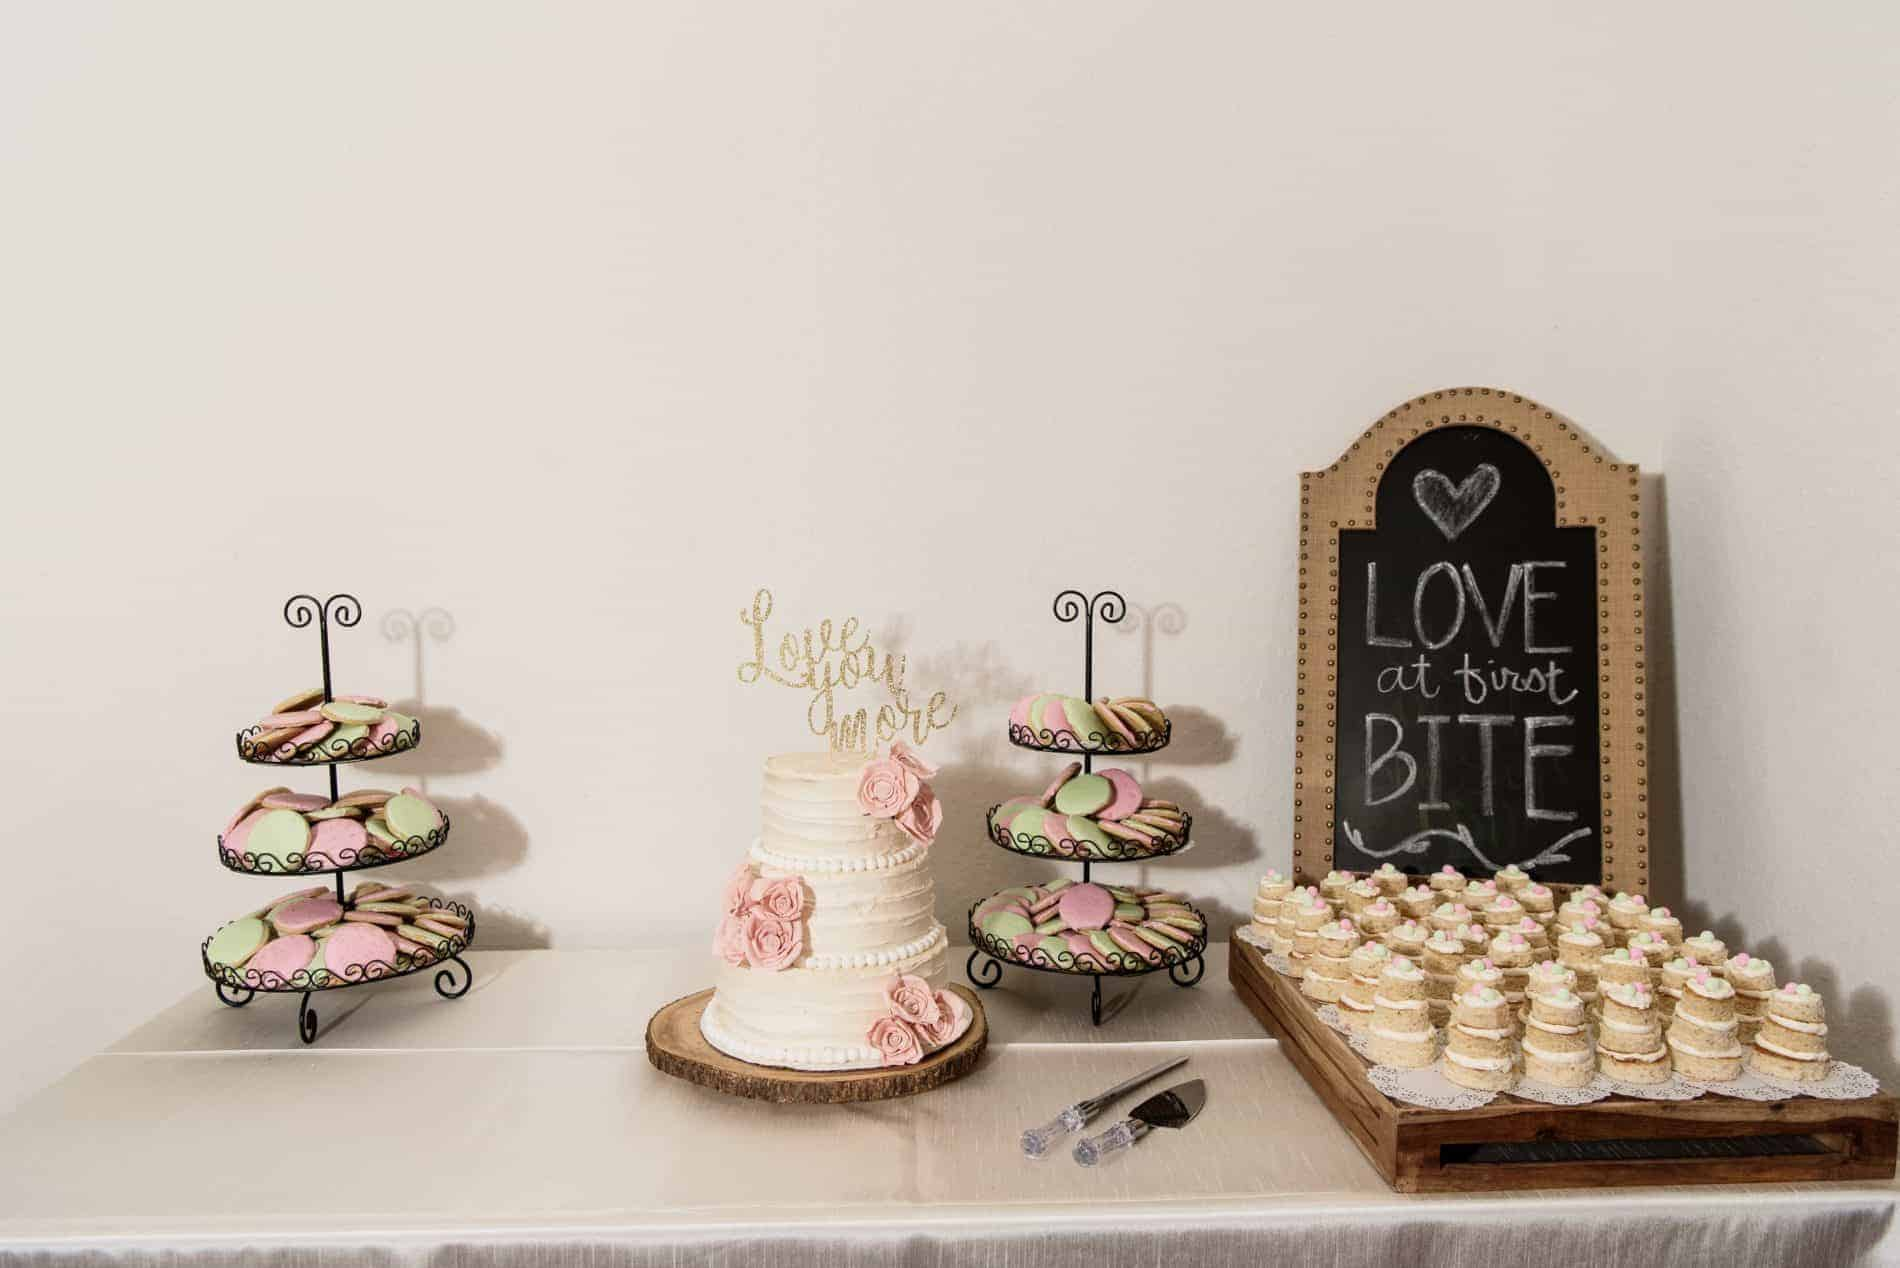 Top Rustic Wedding Ideas in 2019